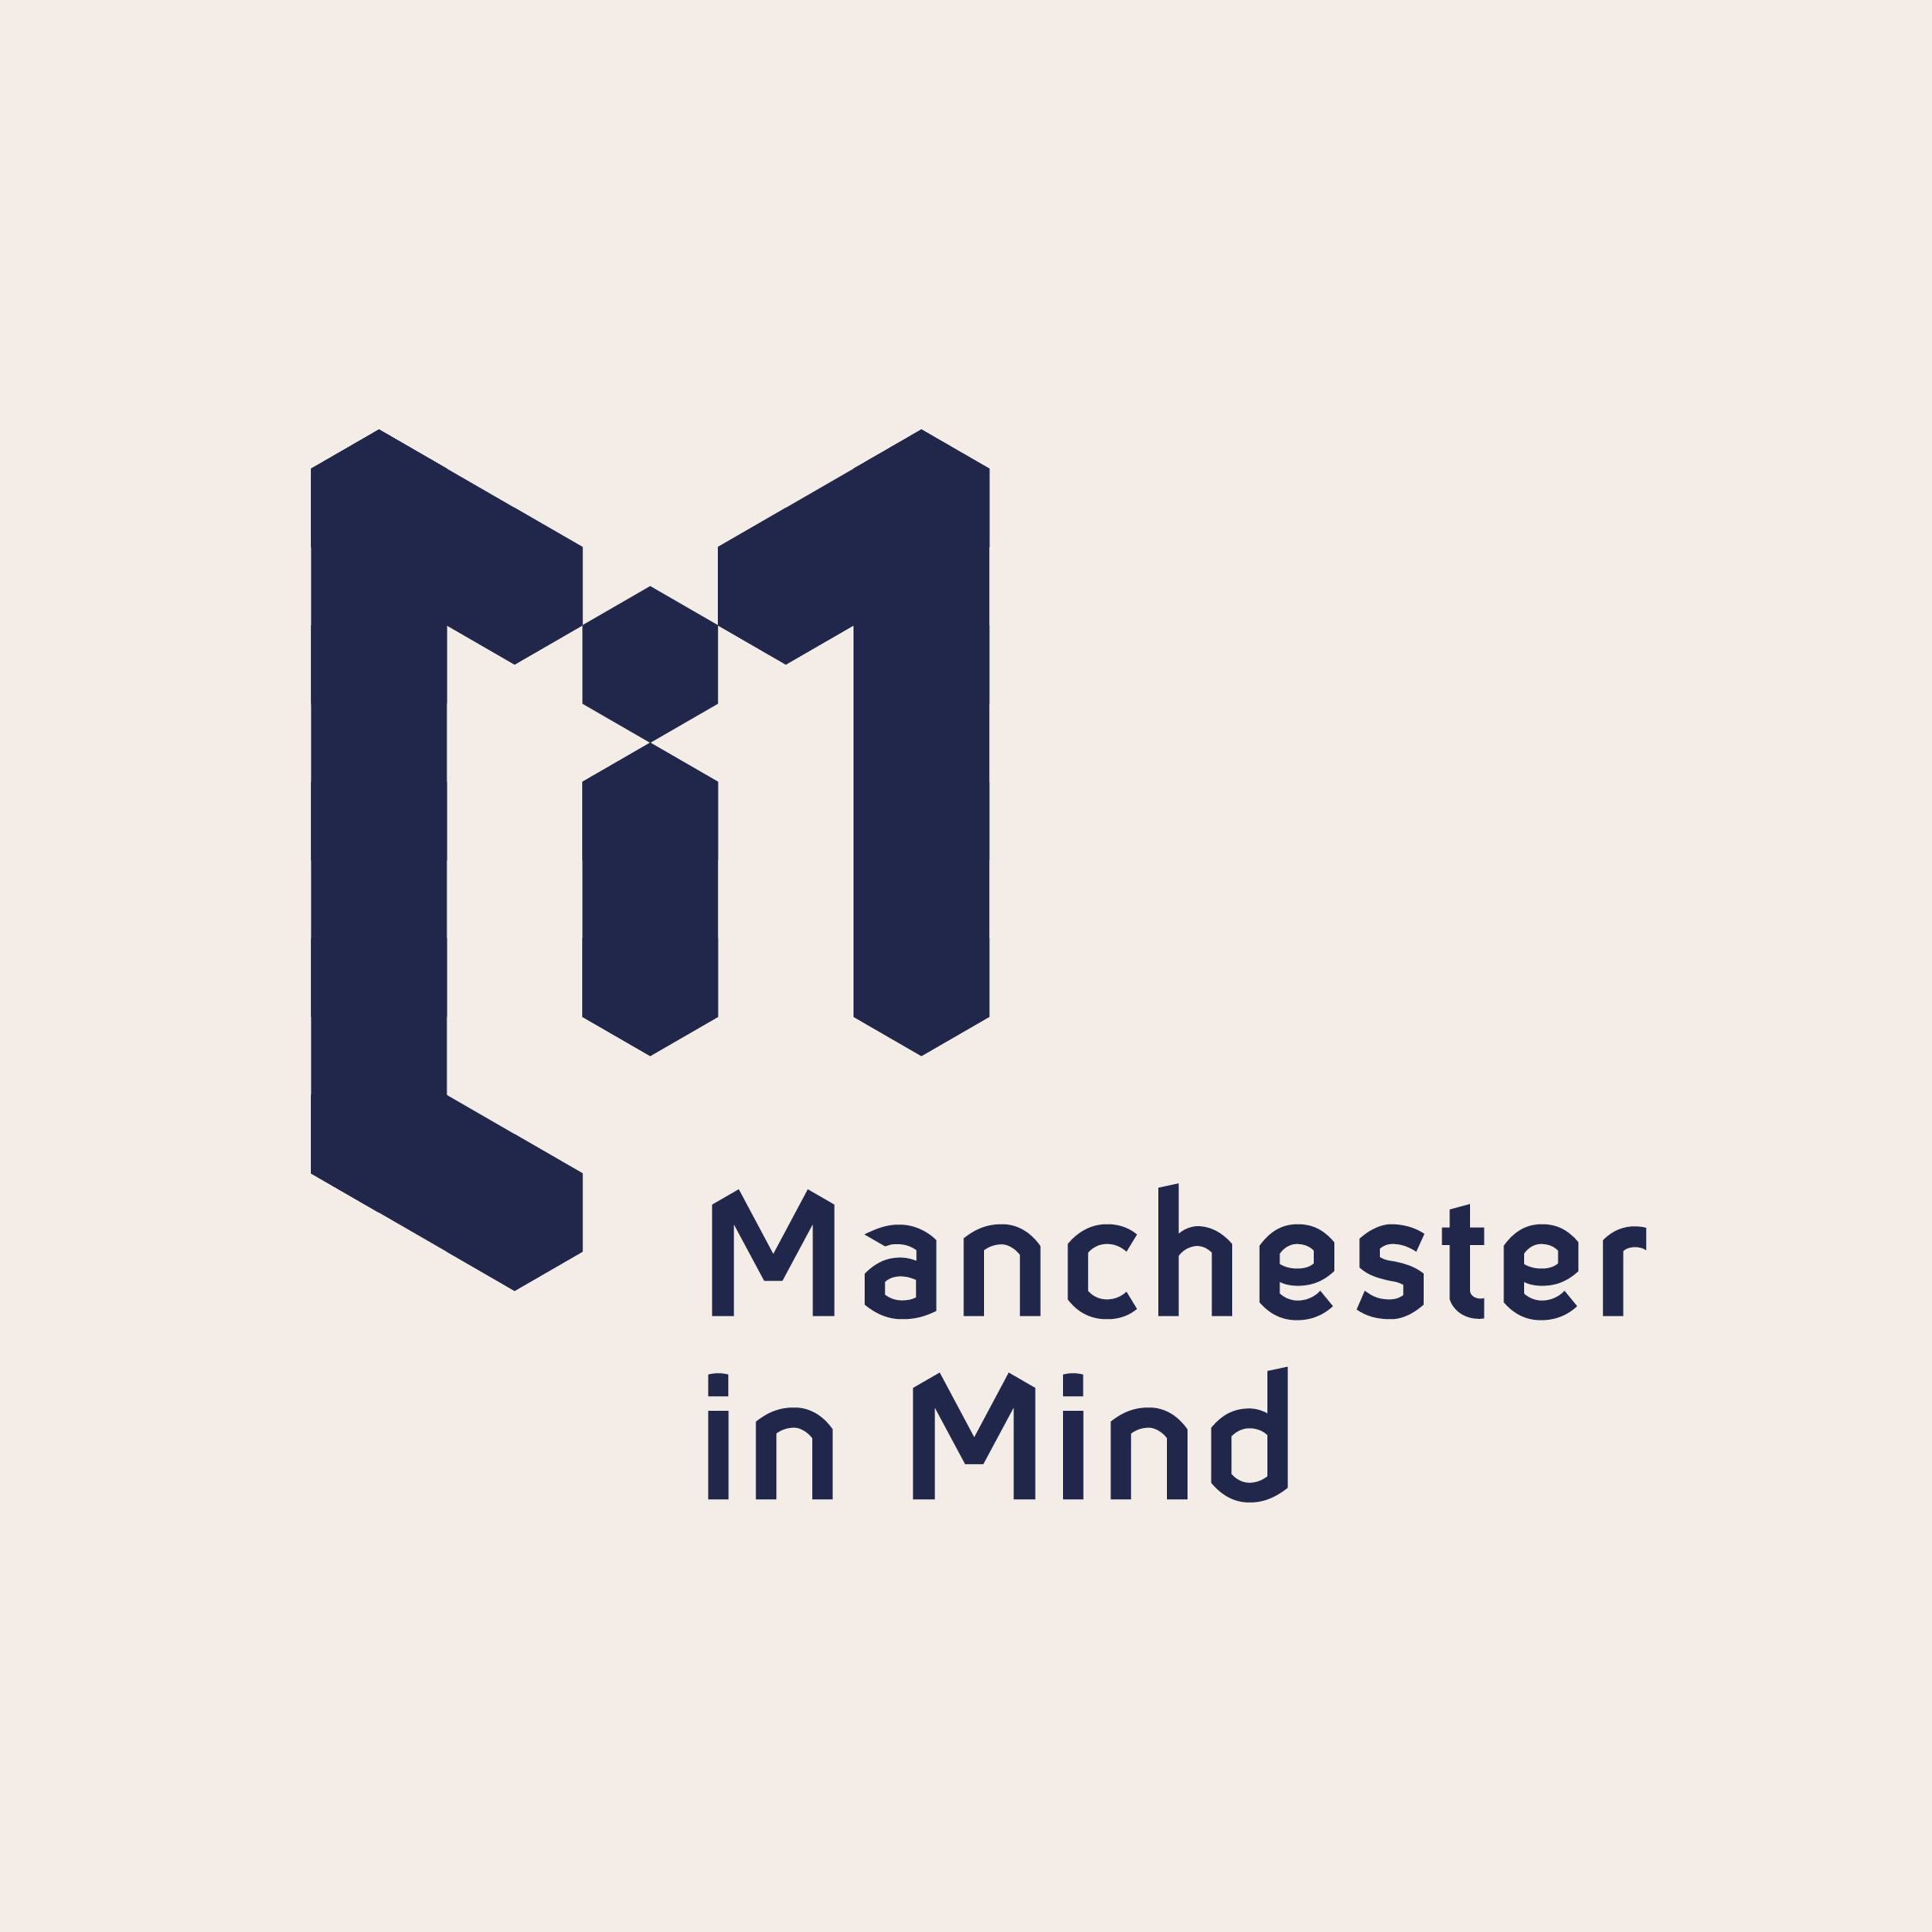 Manchester in Mind reverse logo